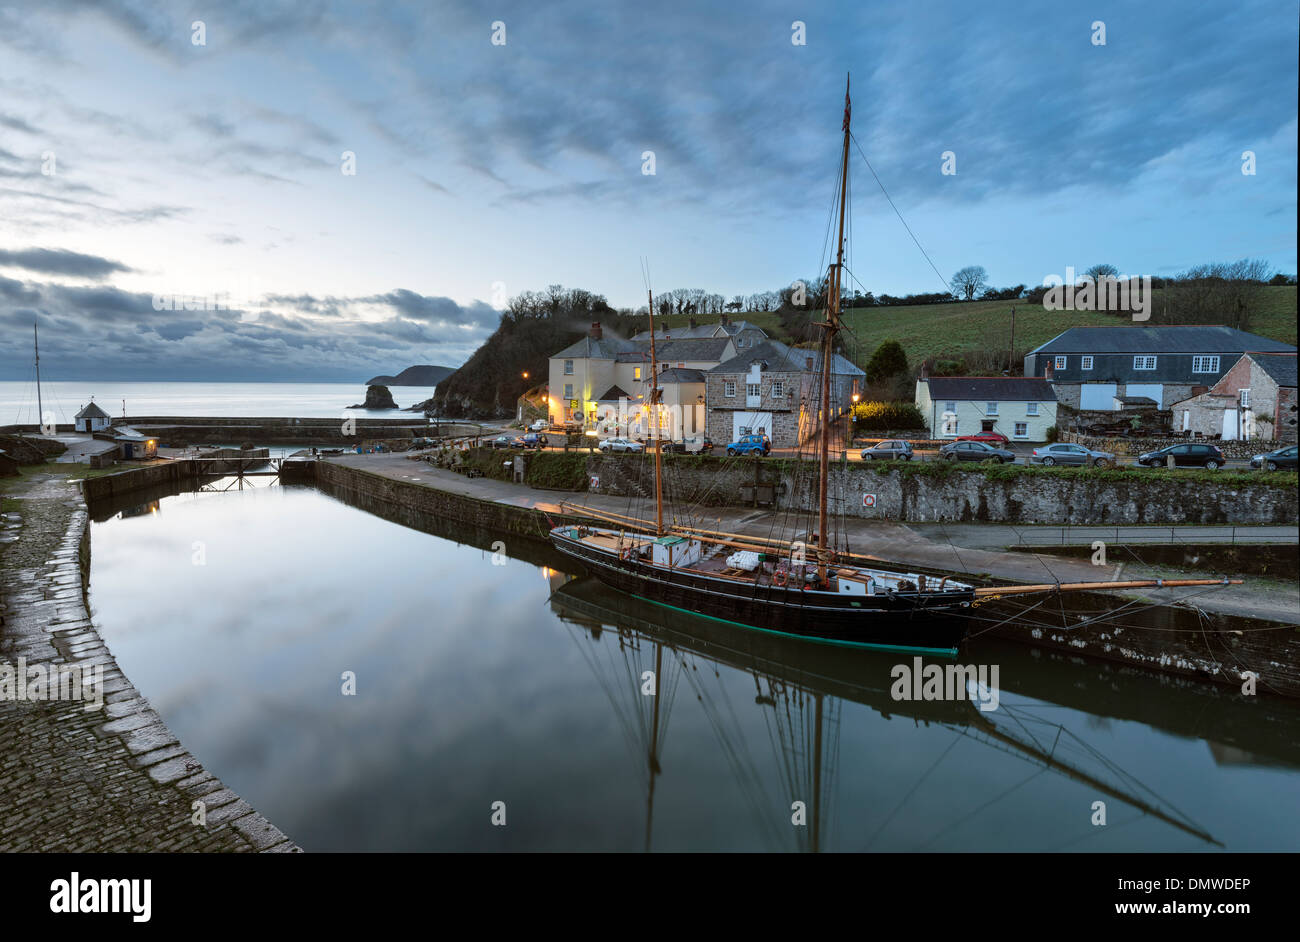 Just before dawn at Charlestown harbour in Cornwall - Stock Image